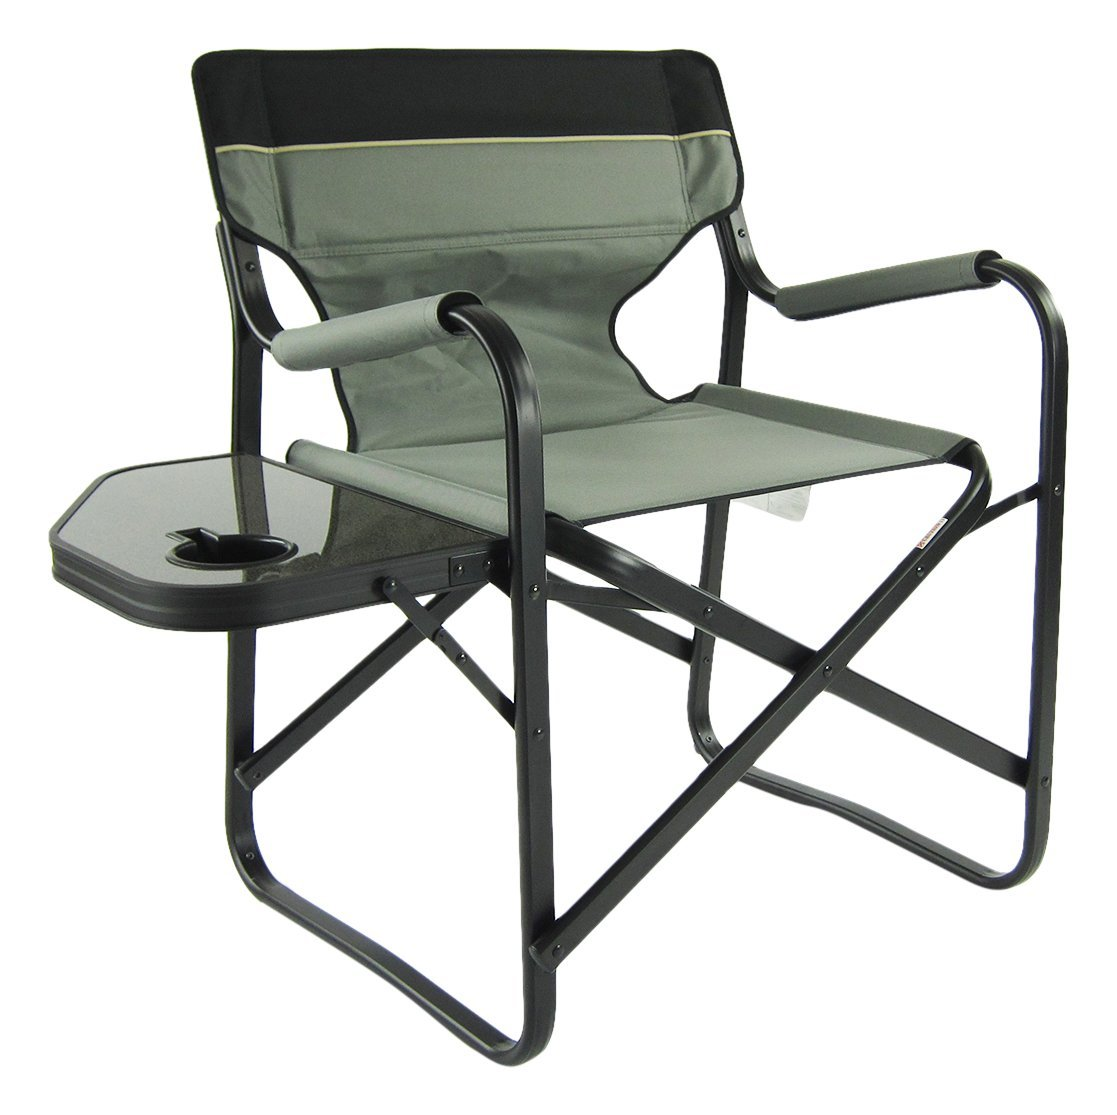 Onway Outdoor Furniture Aluminum Portable Folding Deck Chair with Side Table, Gray